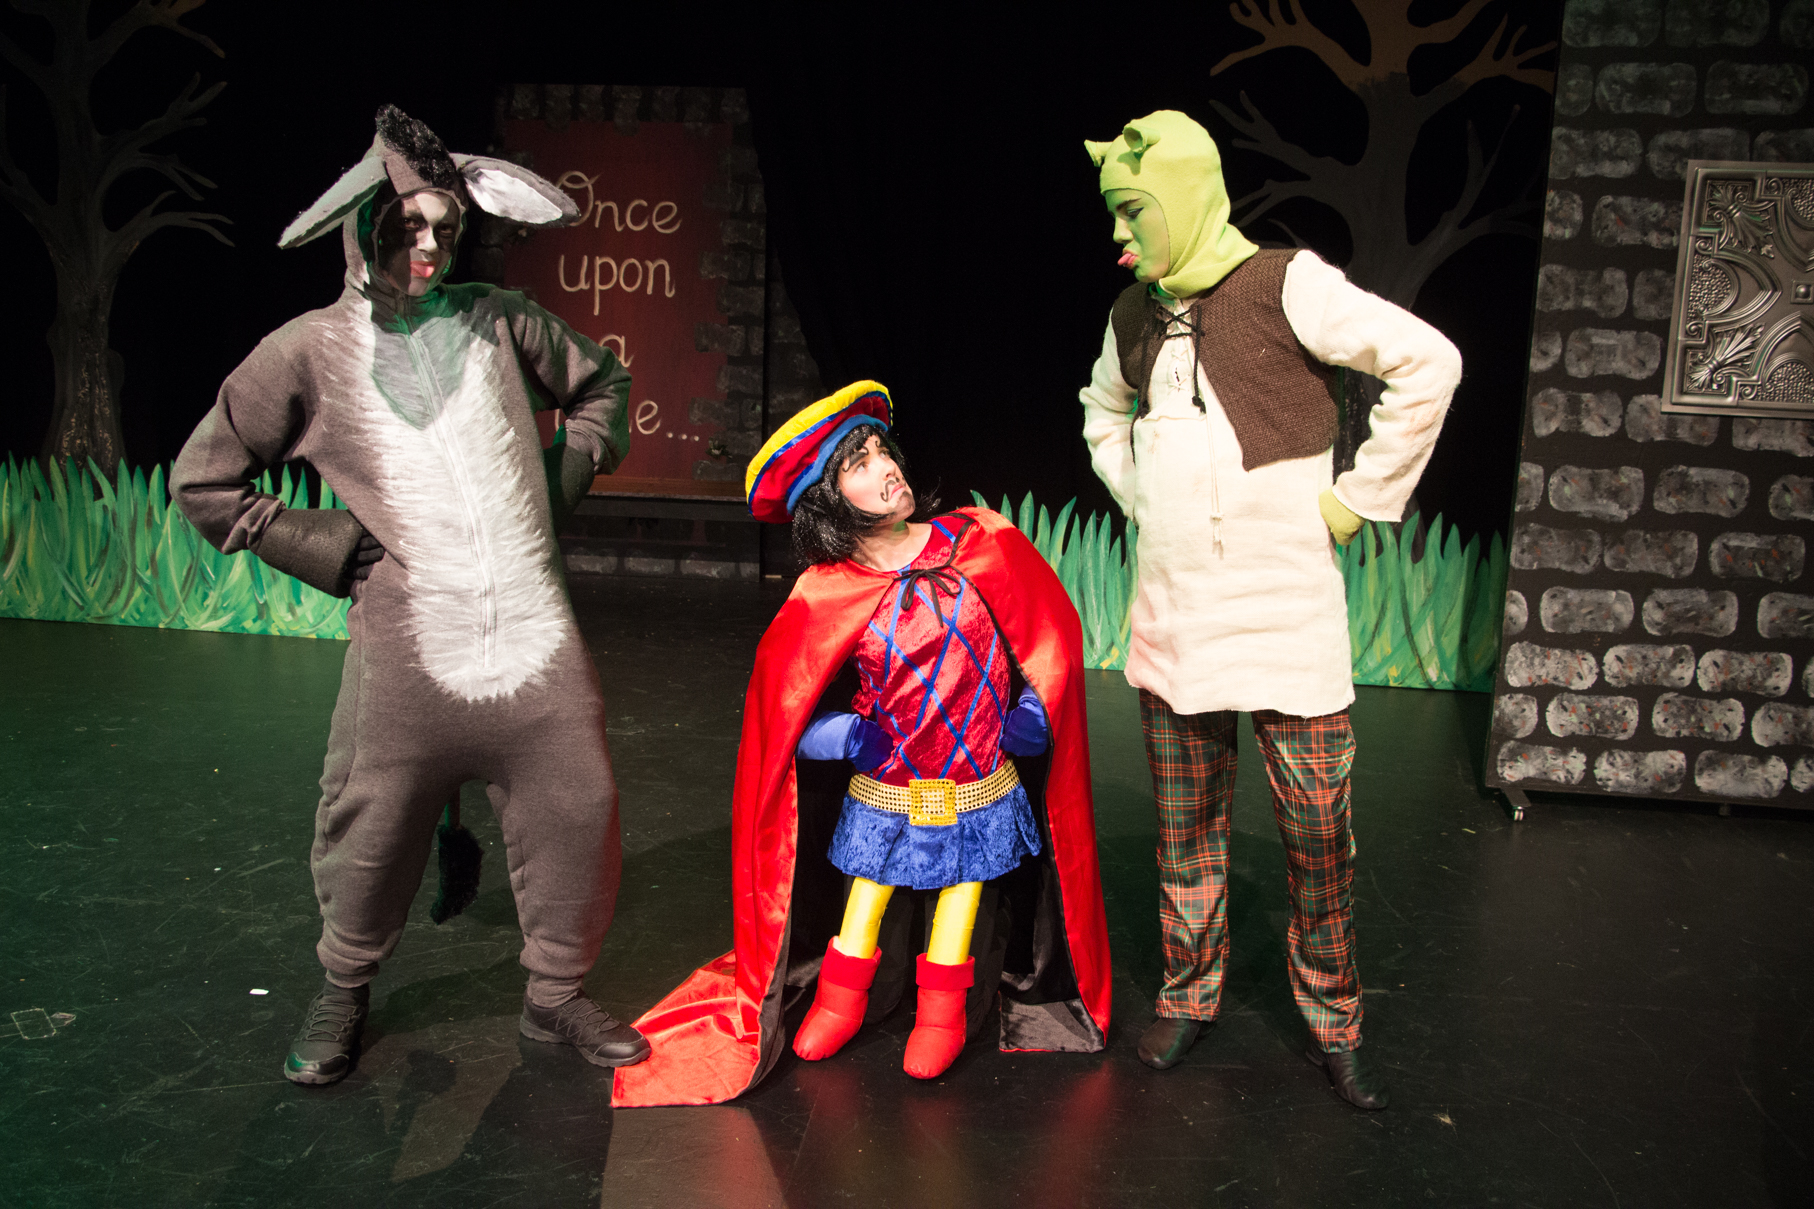 'An ogre-sized fairy tale!' Shrek '16